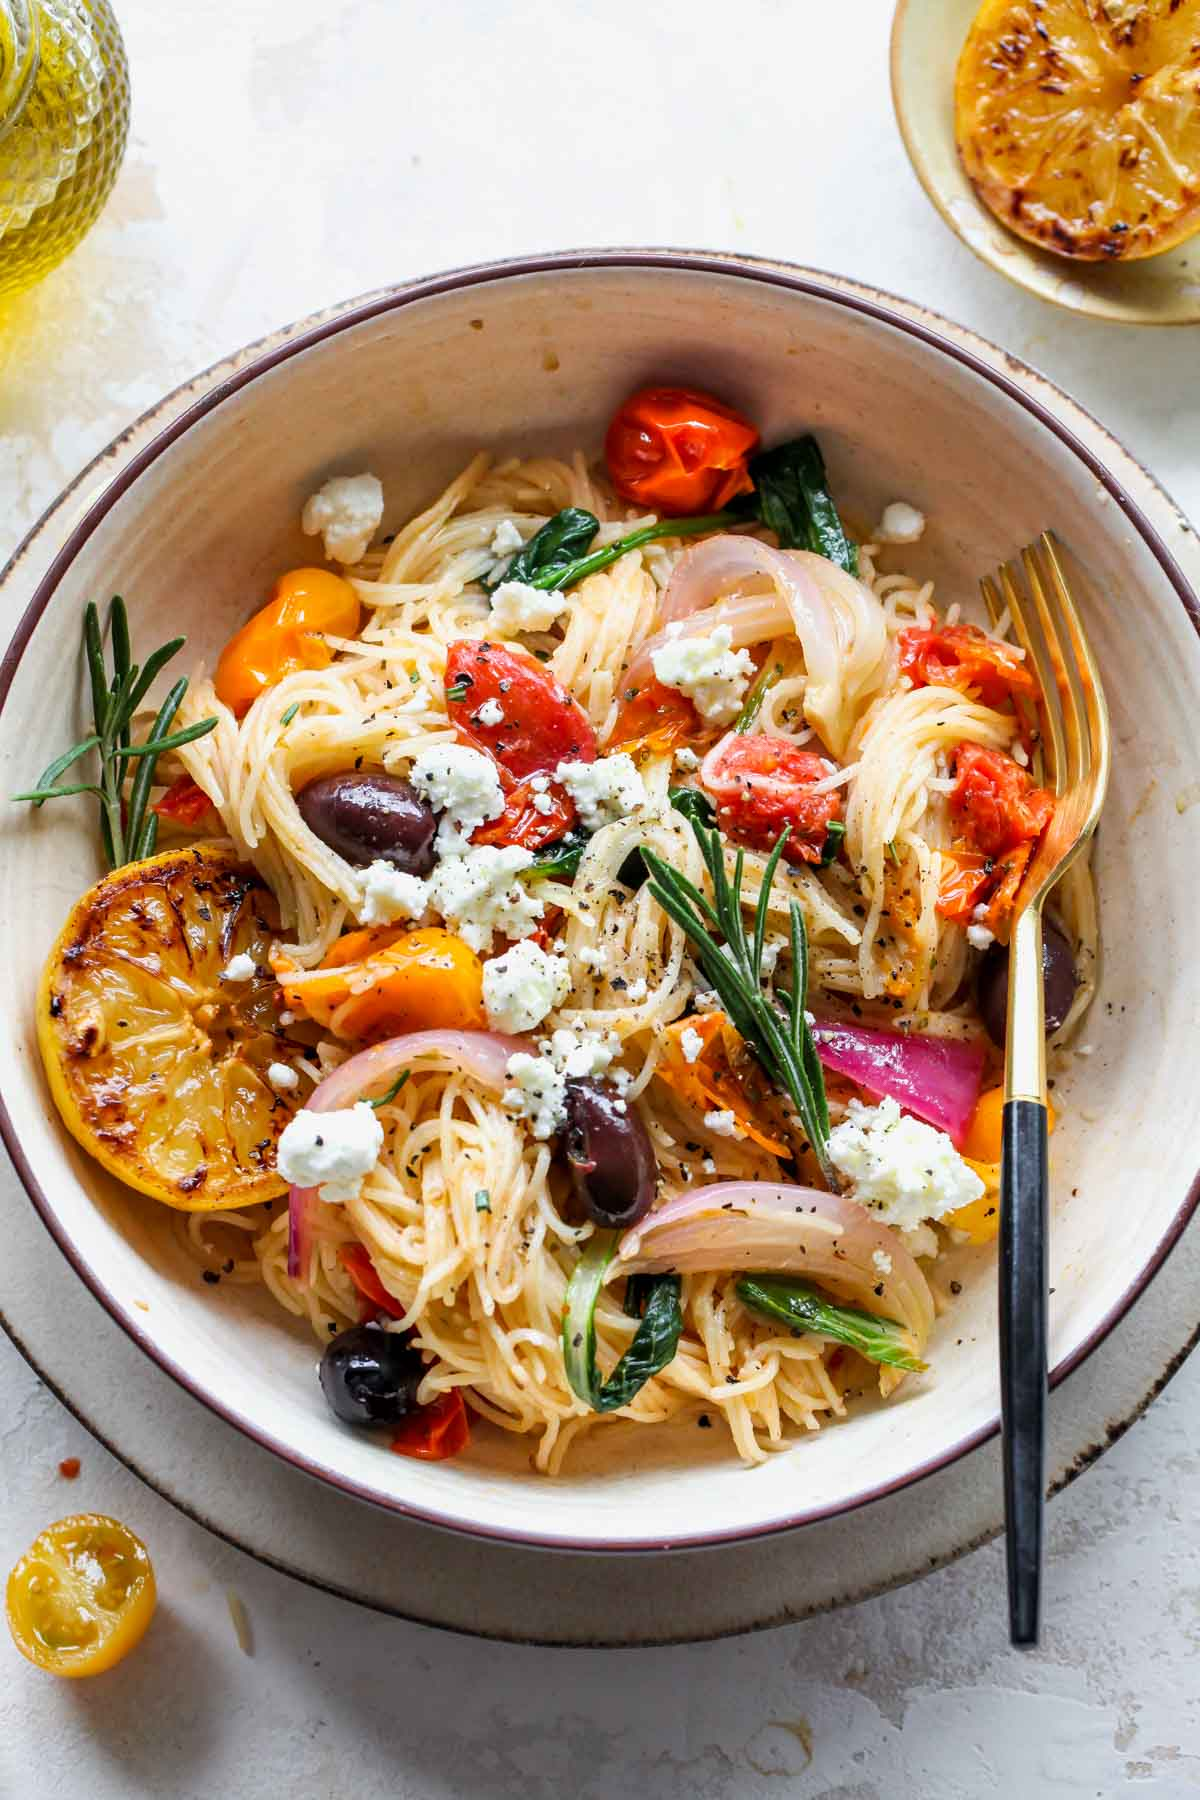 Mediterranean spaghetti in a tan bowl topped with olives and feta cheese